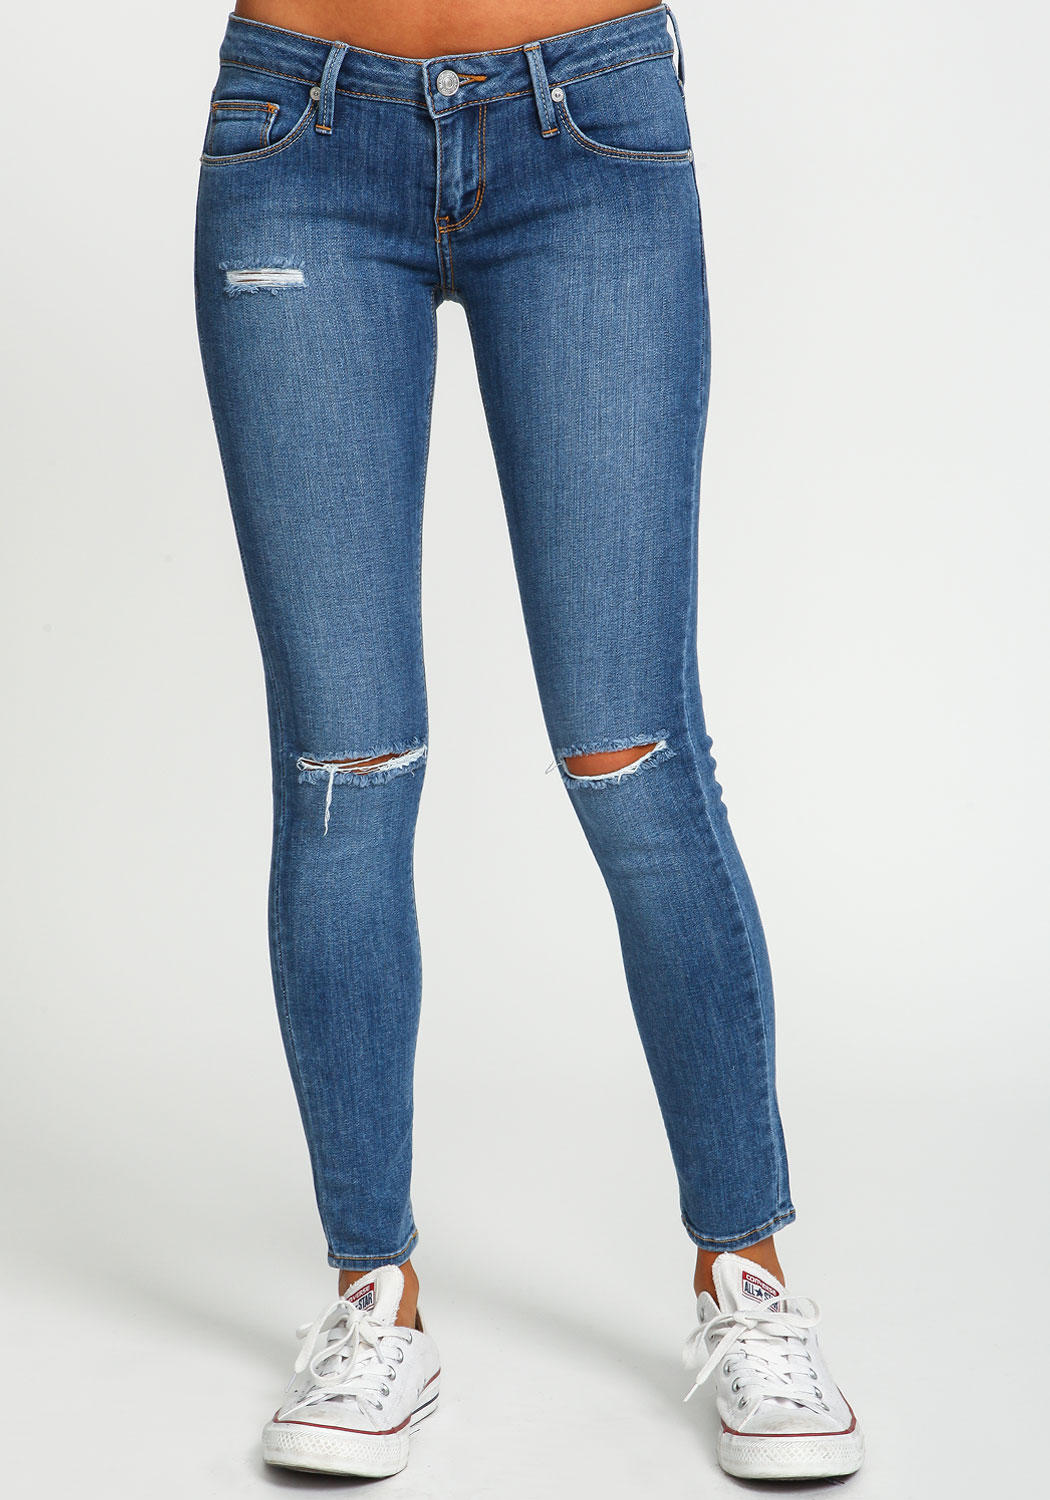 Blue Wash Slit Skinny Jeans From Love Culture